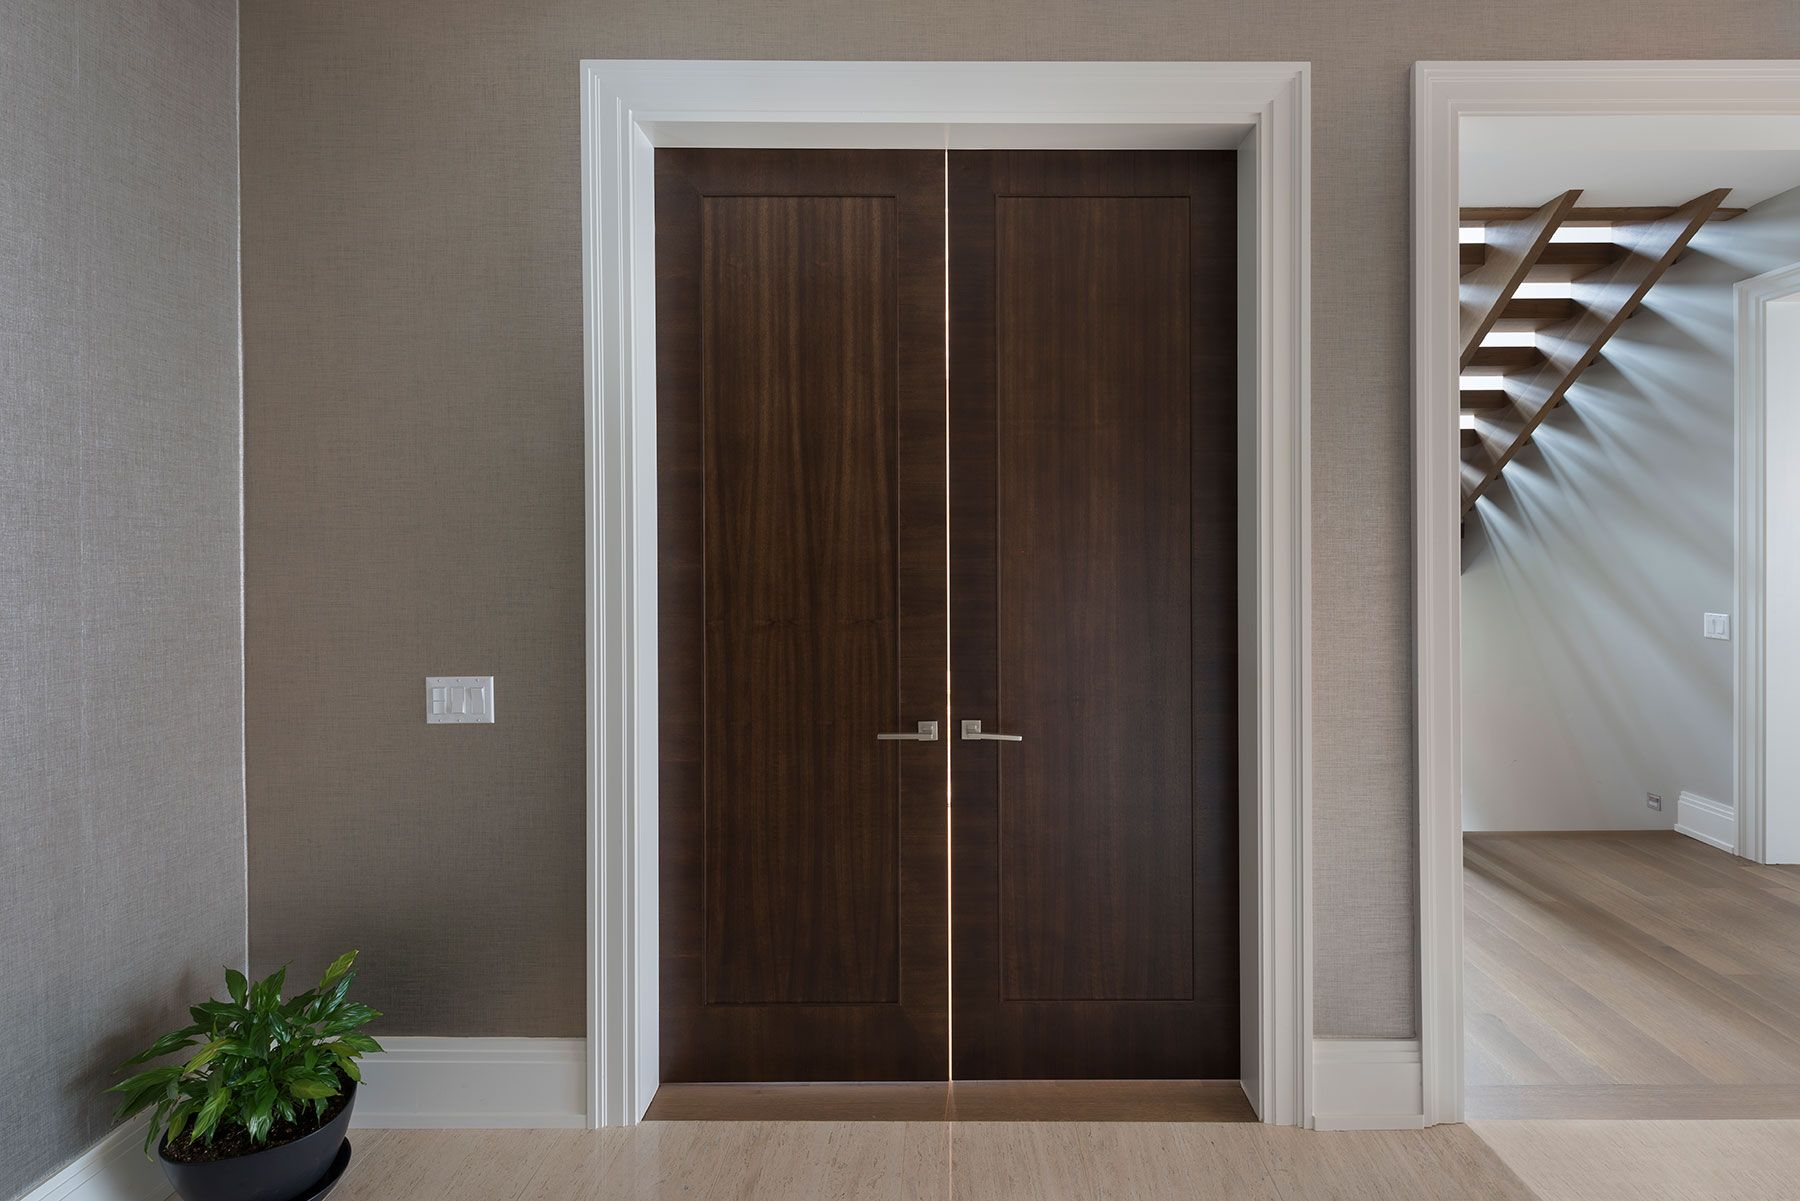 Custom Wood Interior Doors | Office Modern Door DBIM MD1005   Glenview Haus    Custom